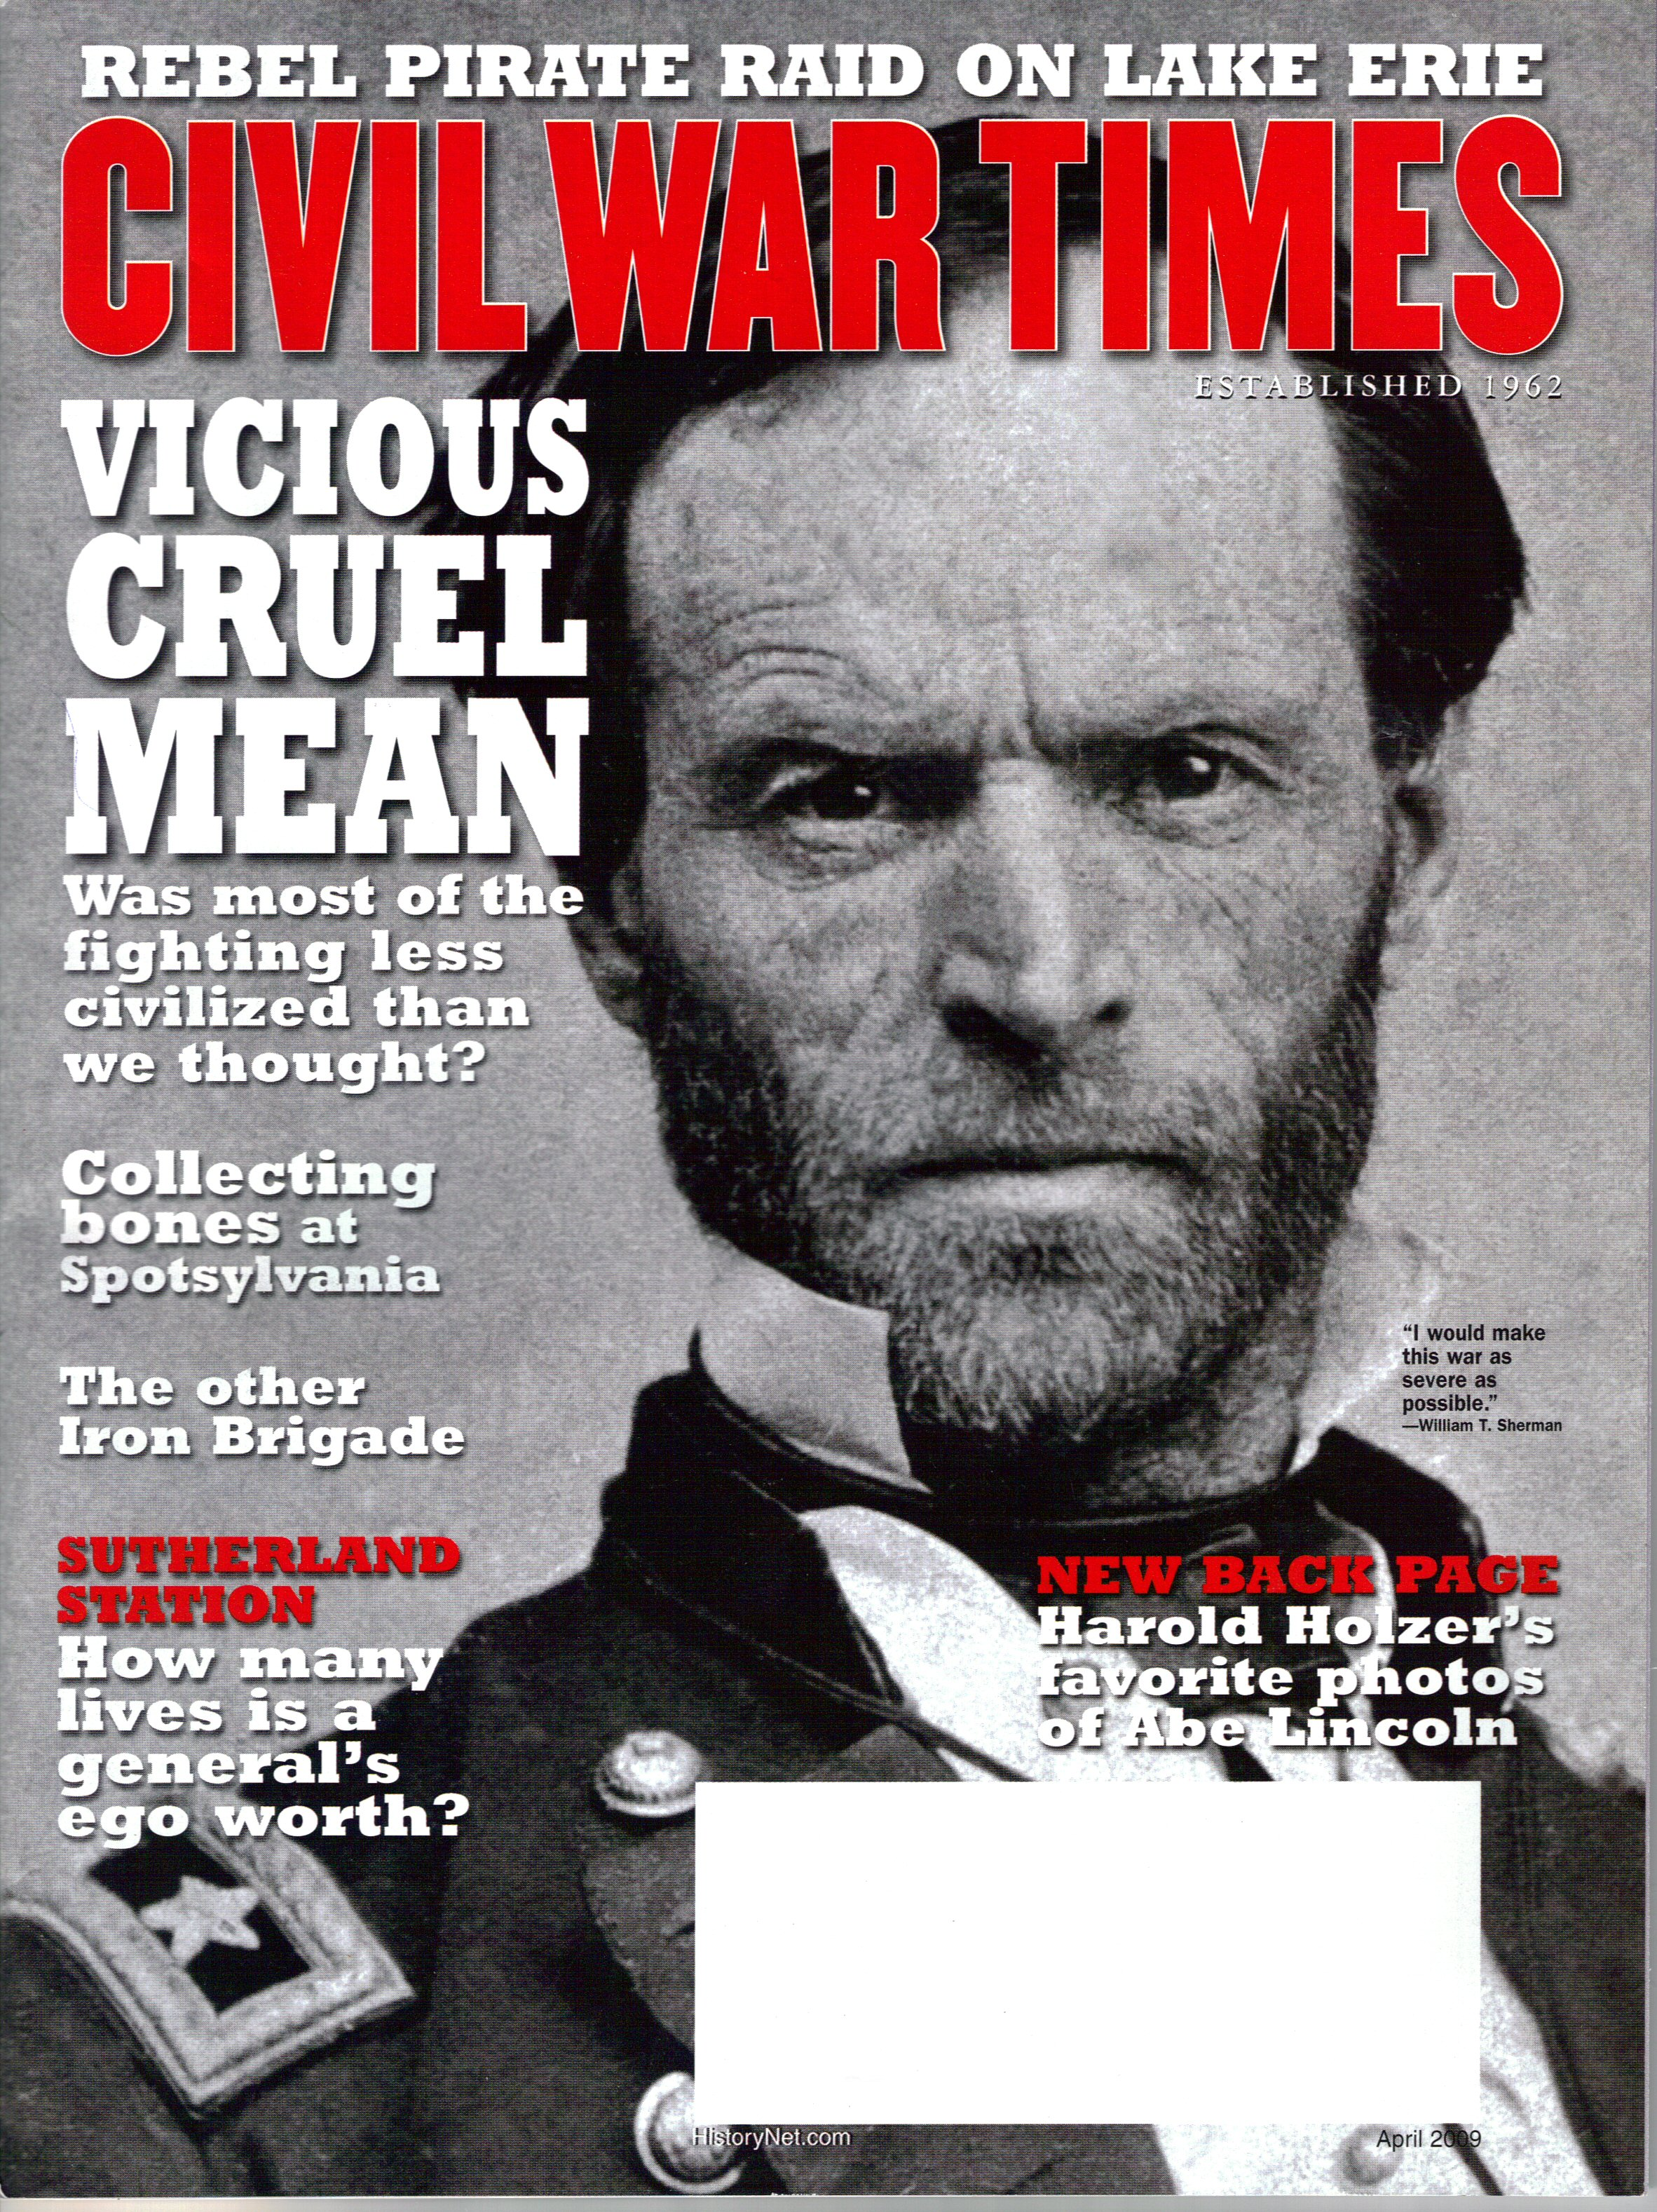 Civil War Times, Volume 48, Number 2 (April 2009)